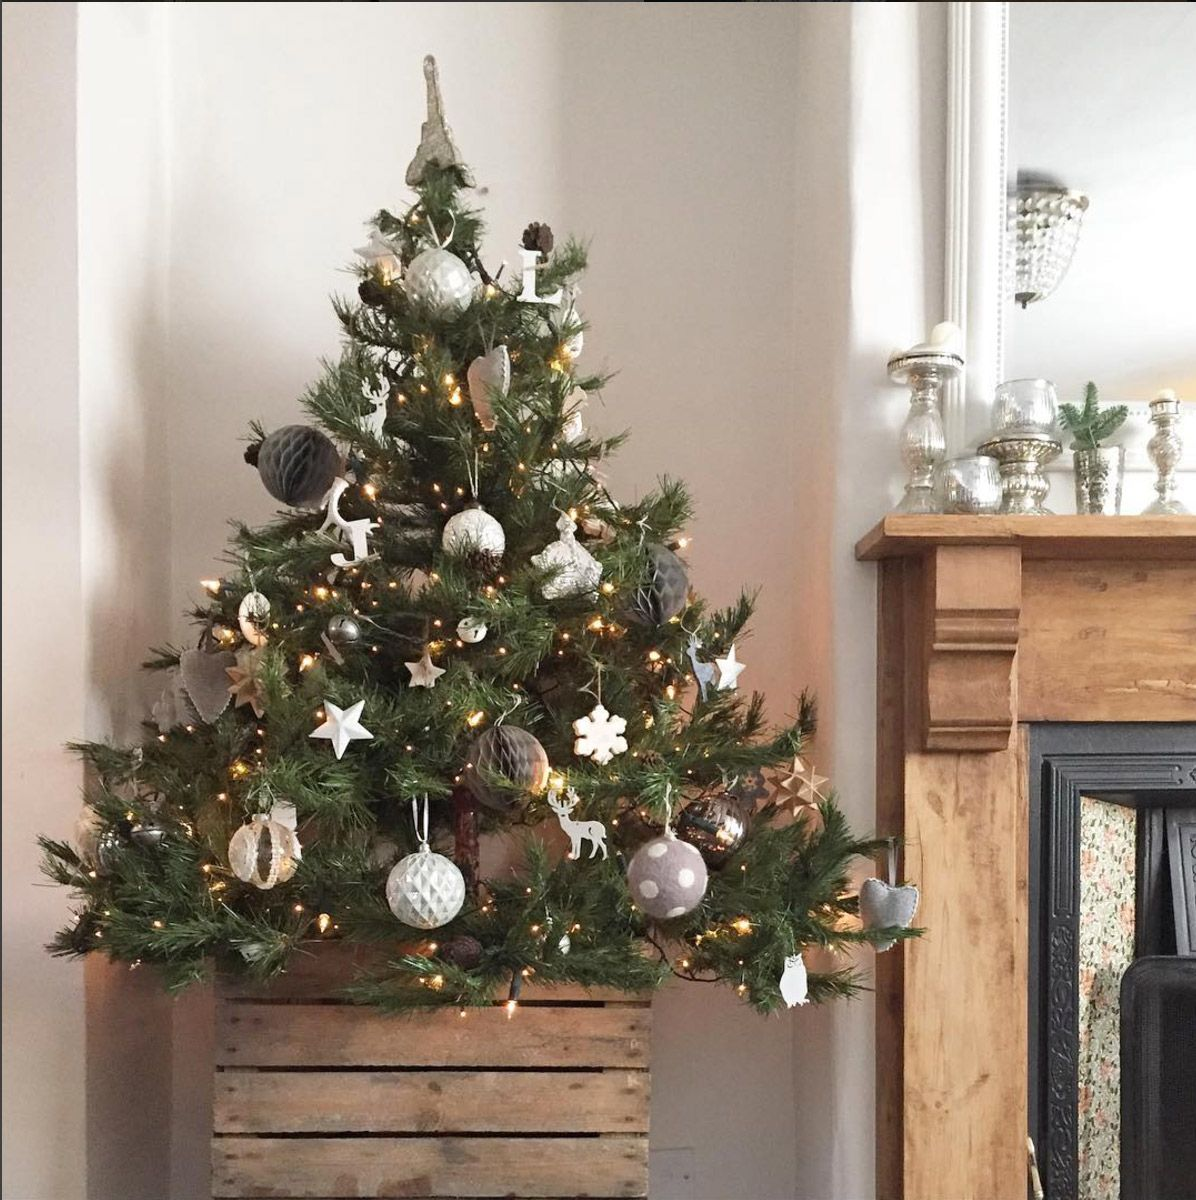 Do You Have A Christmas Theme? - Rock My Style | UK Daily Lifestyle Blog